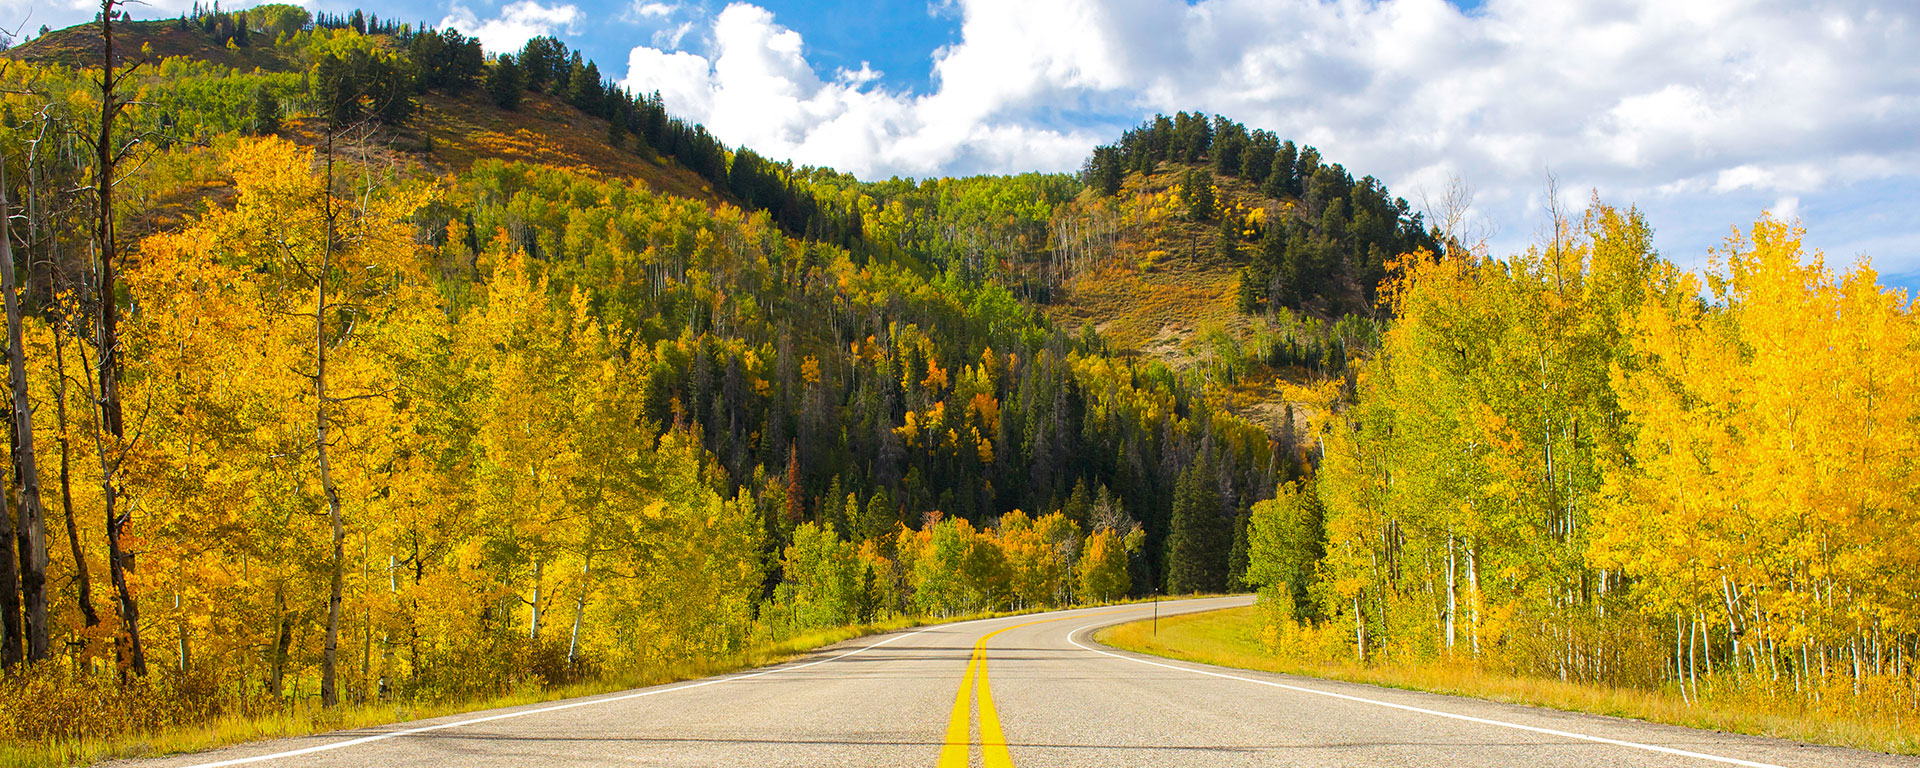 Steamboat Springs Transportation Options   Shuttles   Taxis